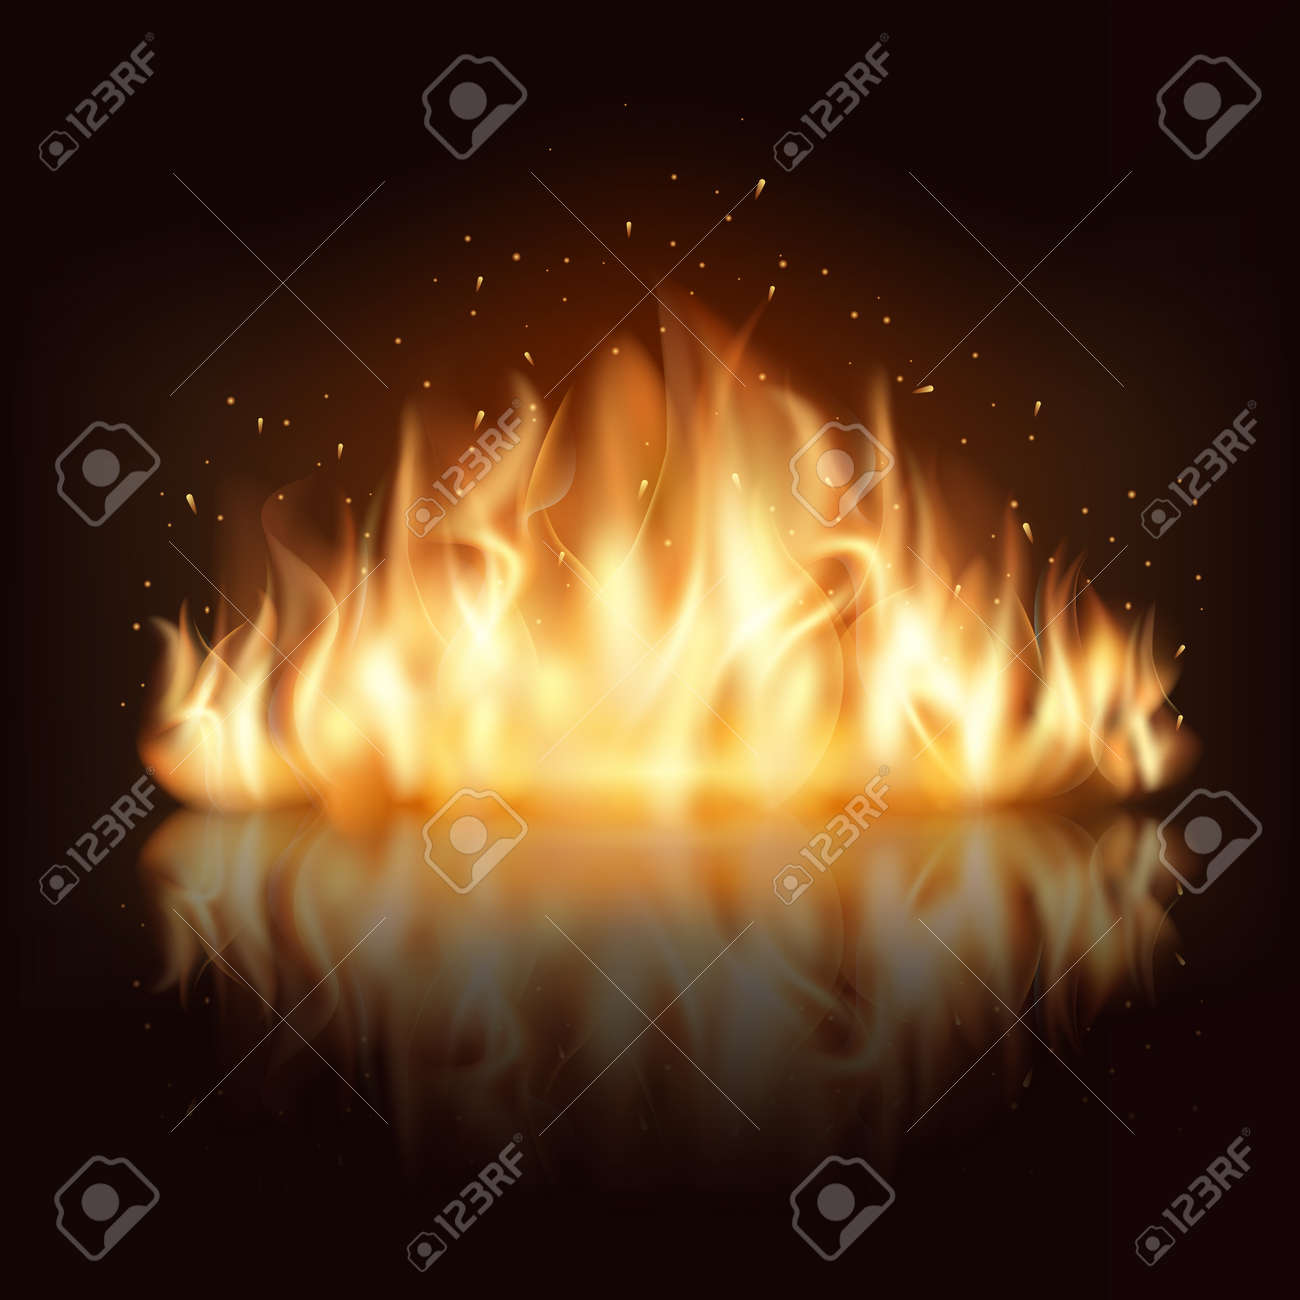 Burning fire flame. Burn and hot, warm and heat, energy flammable, flaming vector illustration - 166761242